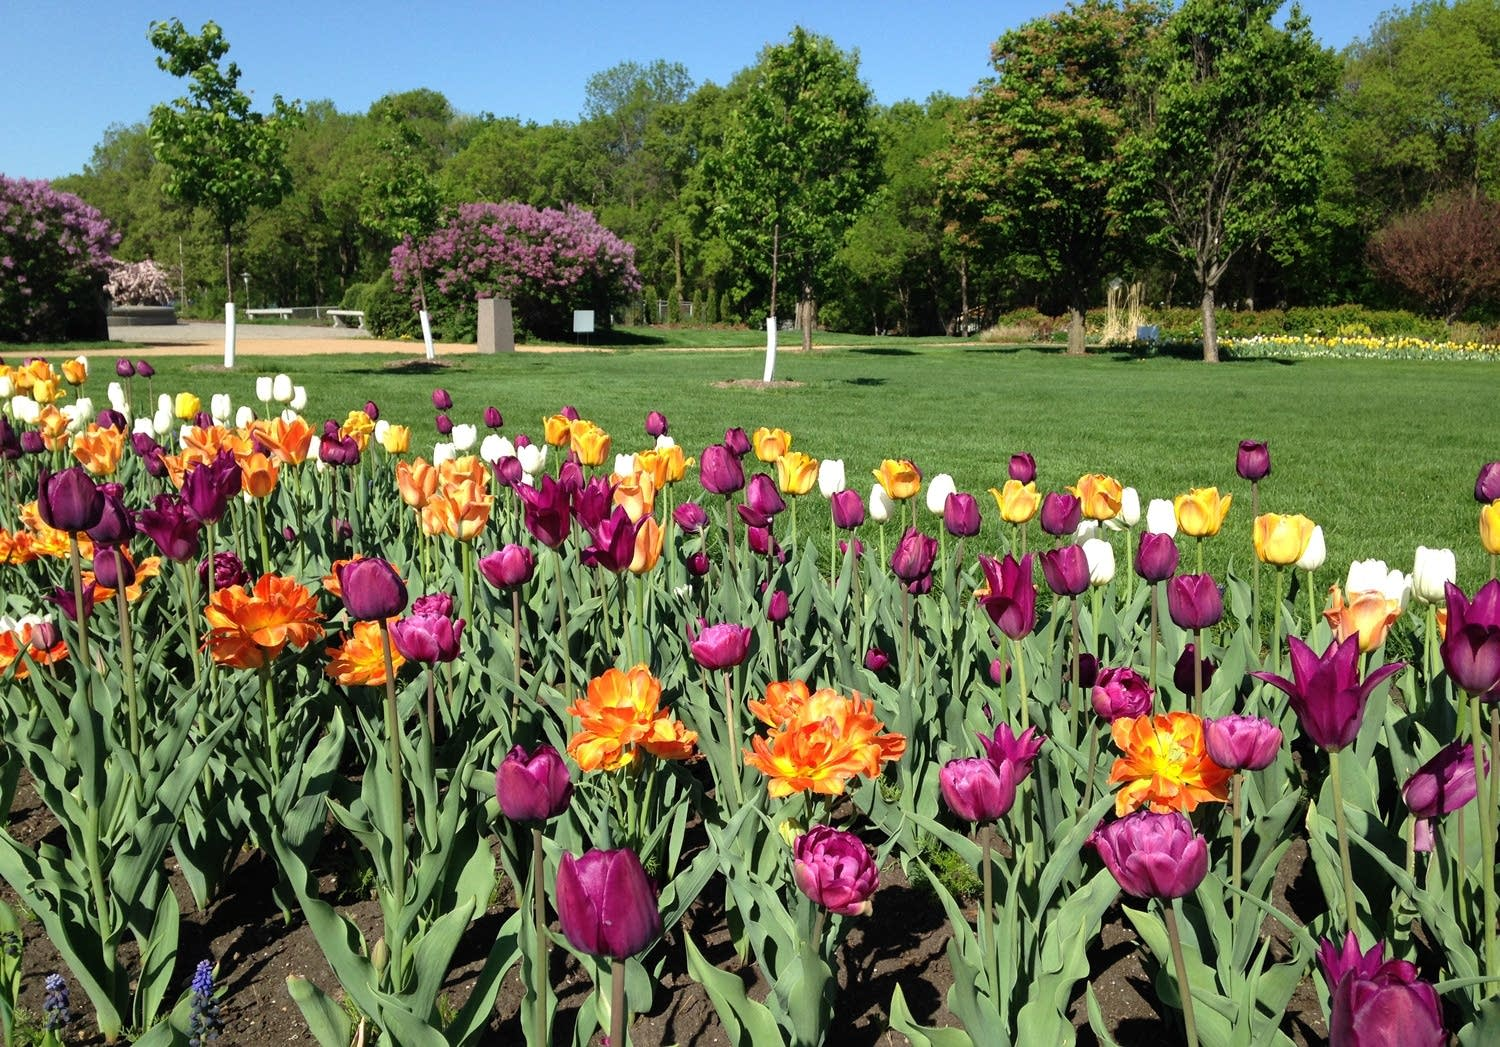 Flowers in bloom at Lake Harriet Rose Garden